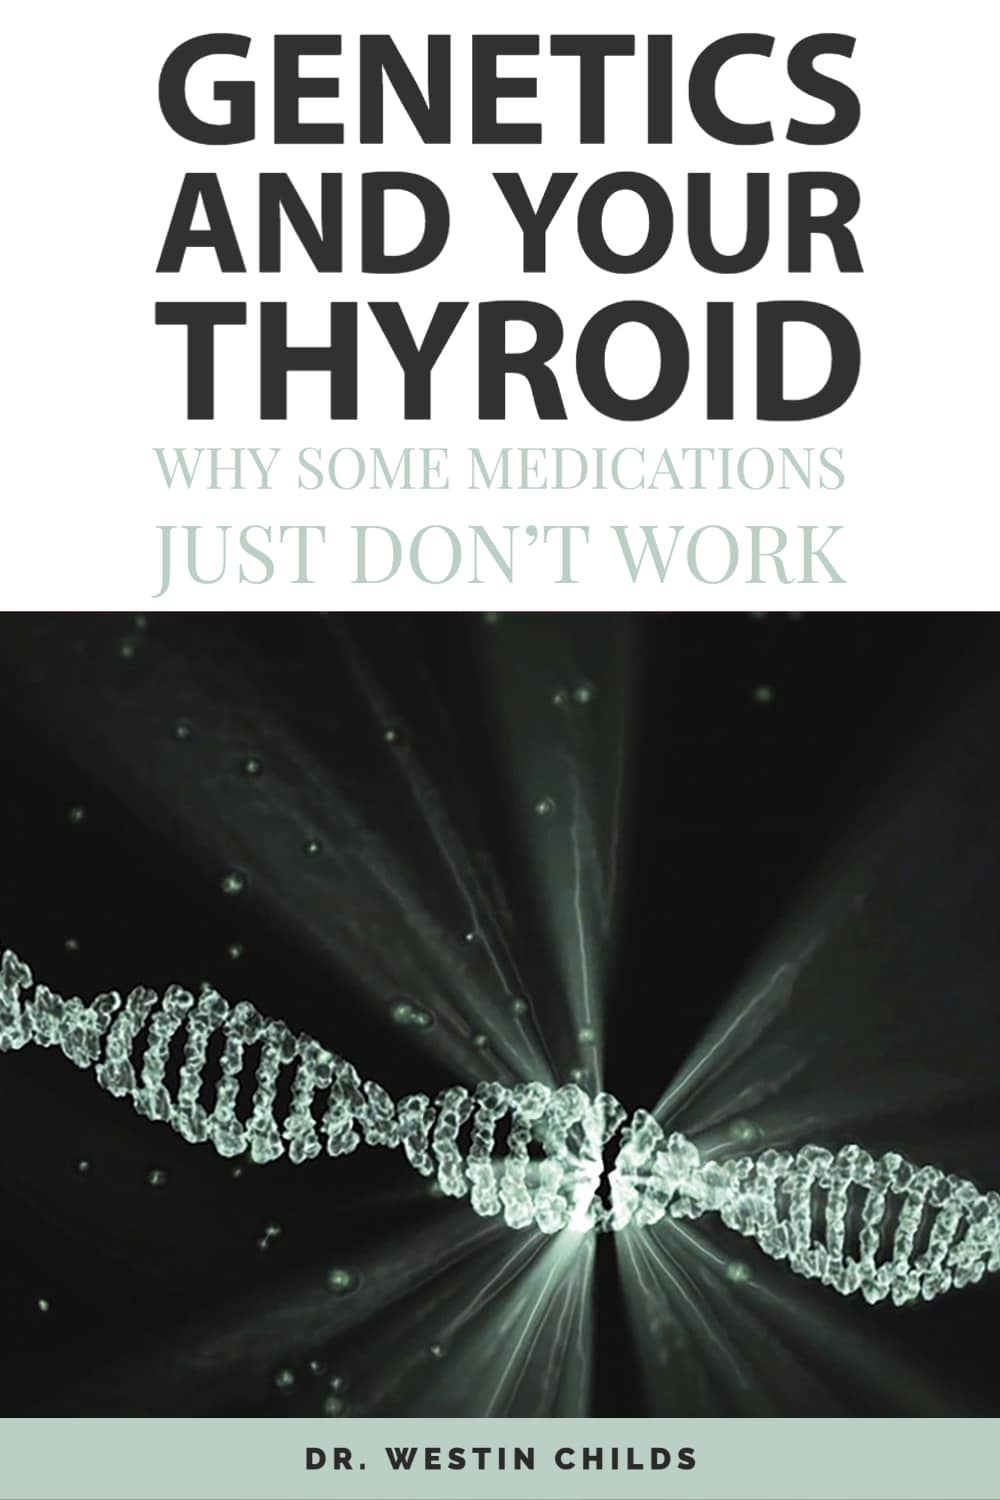 genetics and your thyroid